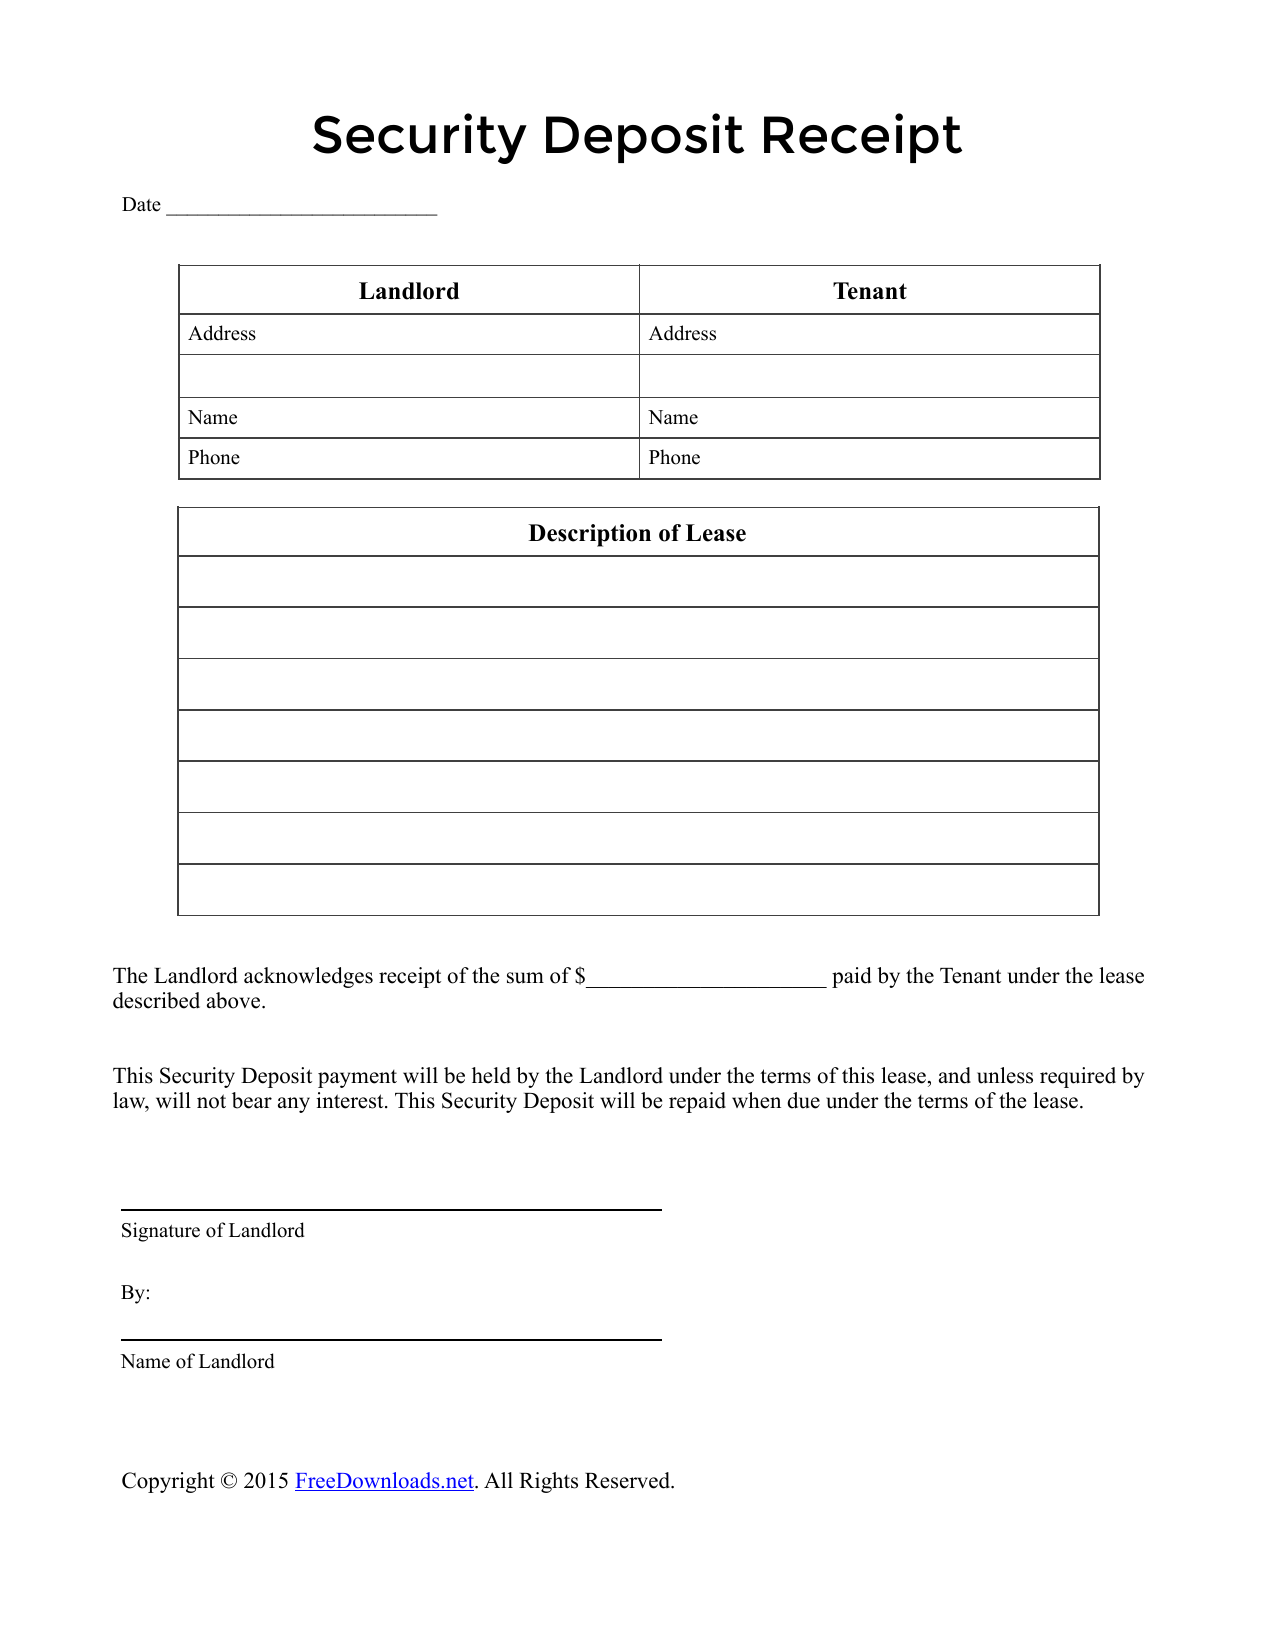 download security deposit receipt template pdf rtf word